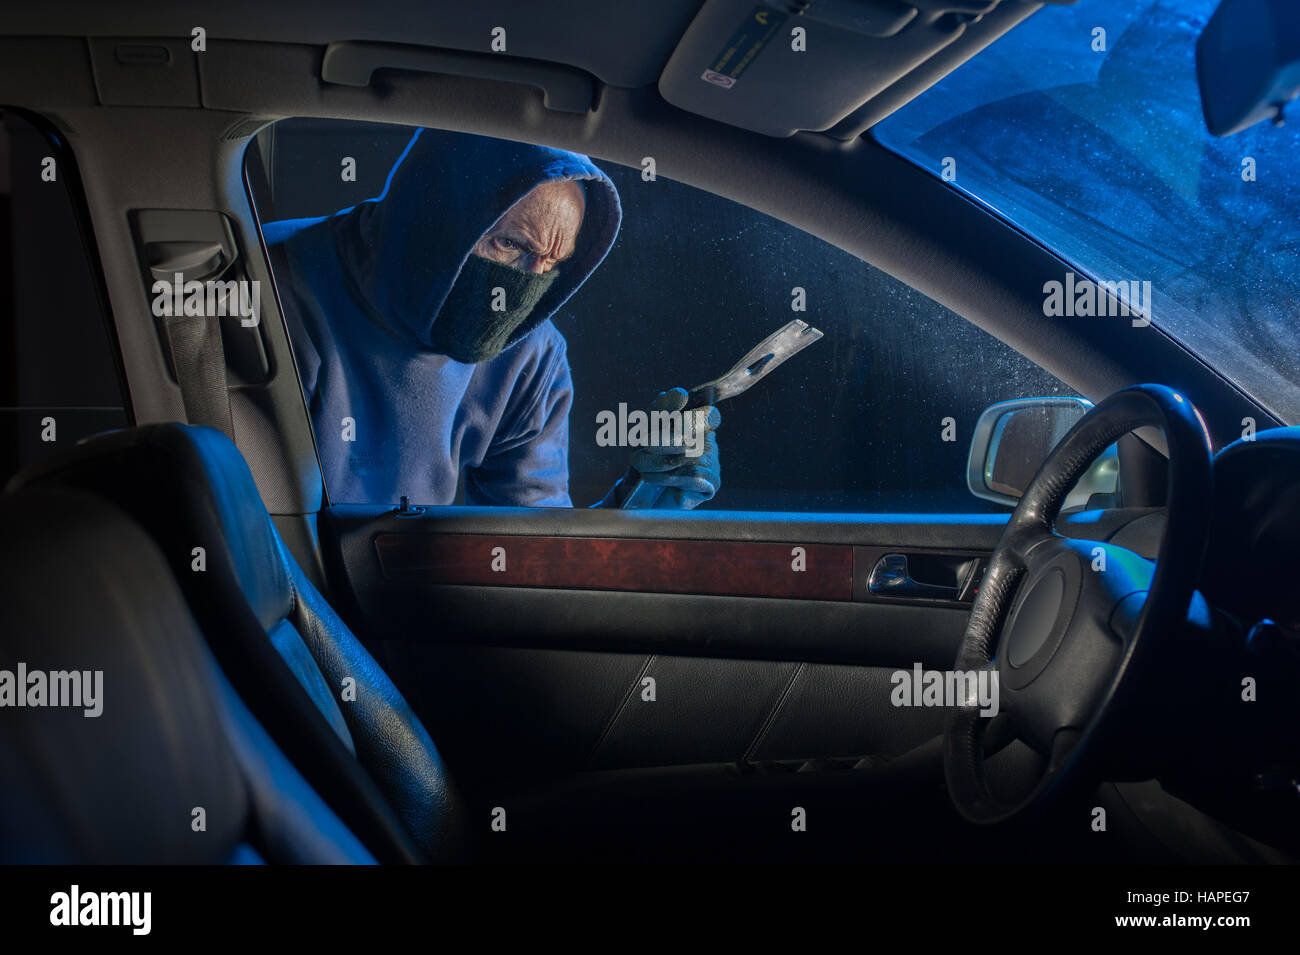 Car thief looking to break into a locked vehicle at night - Stock Image